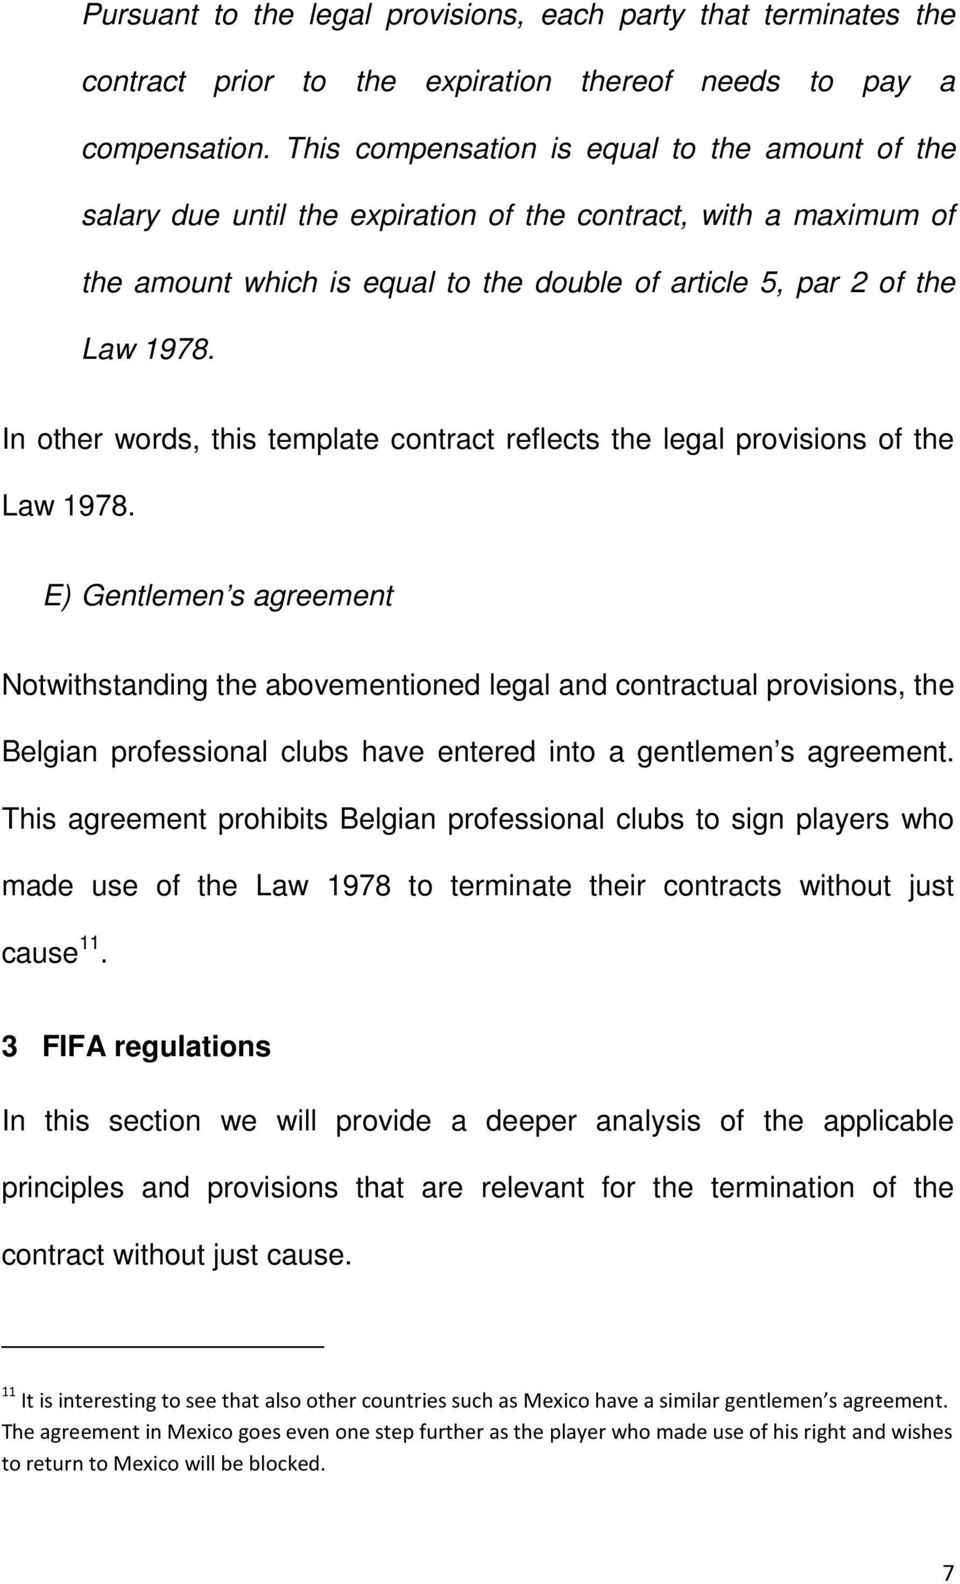 In other words, this template contract reflects the legal provisions of the Law 1978.